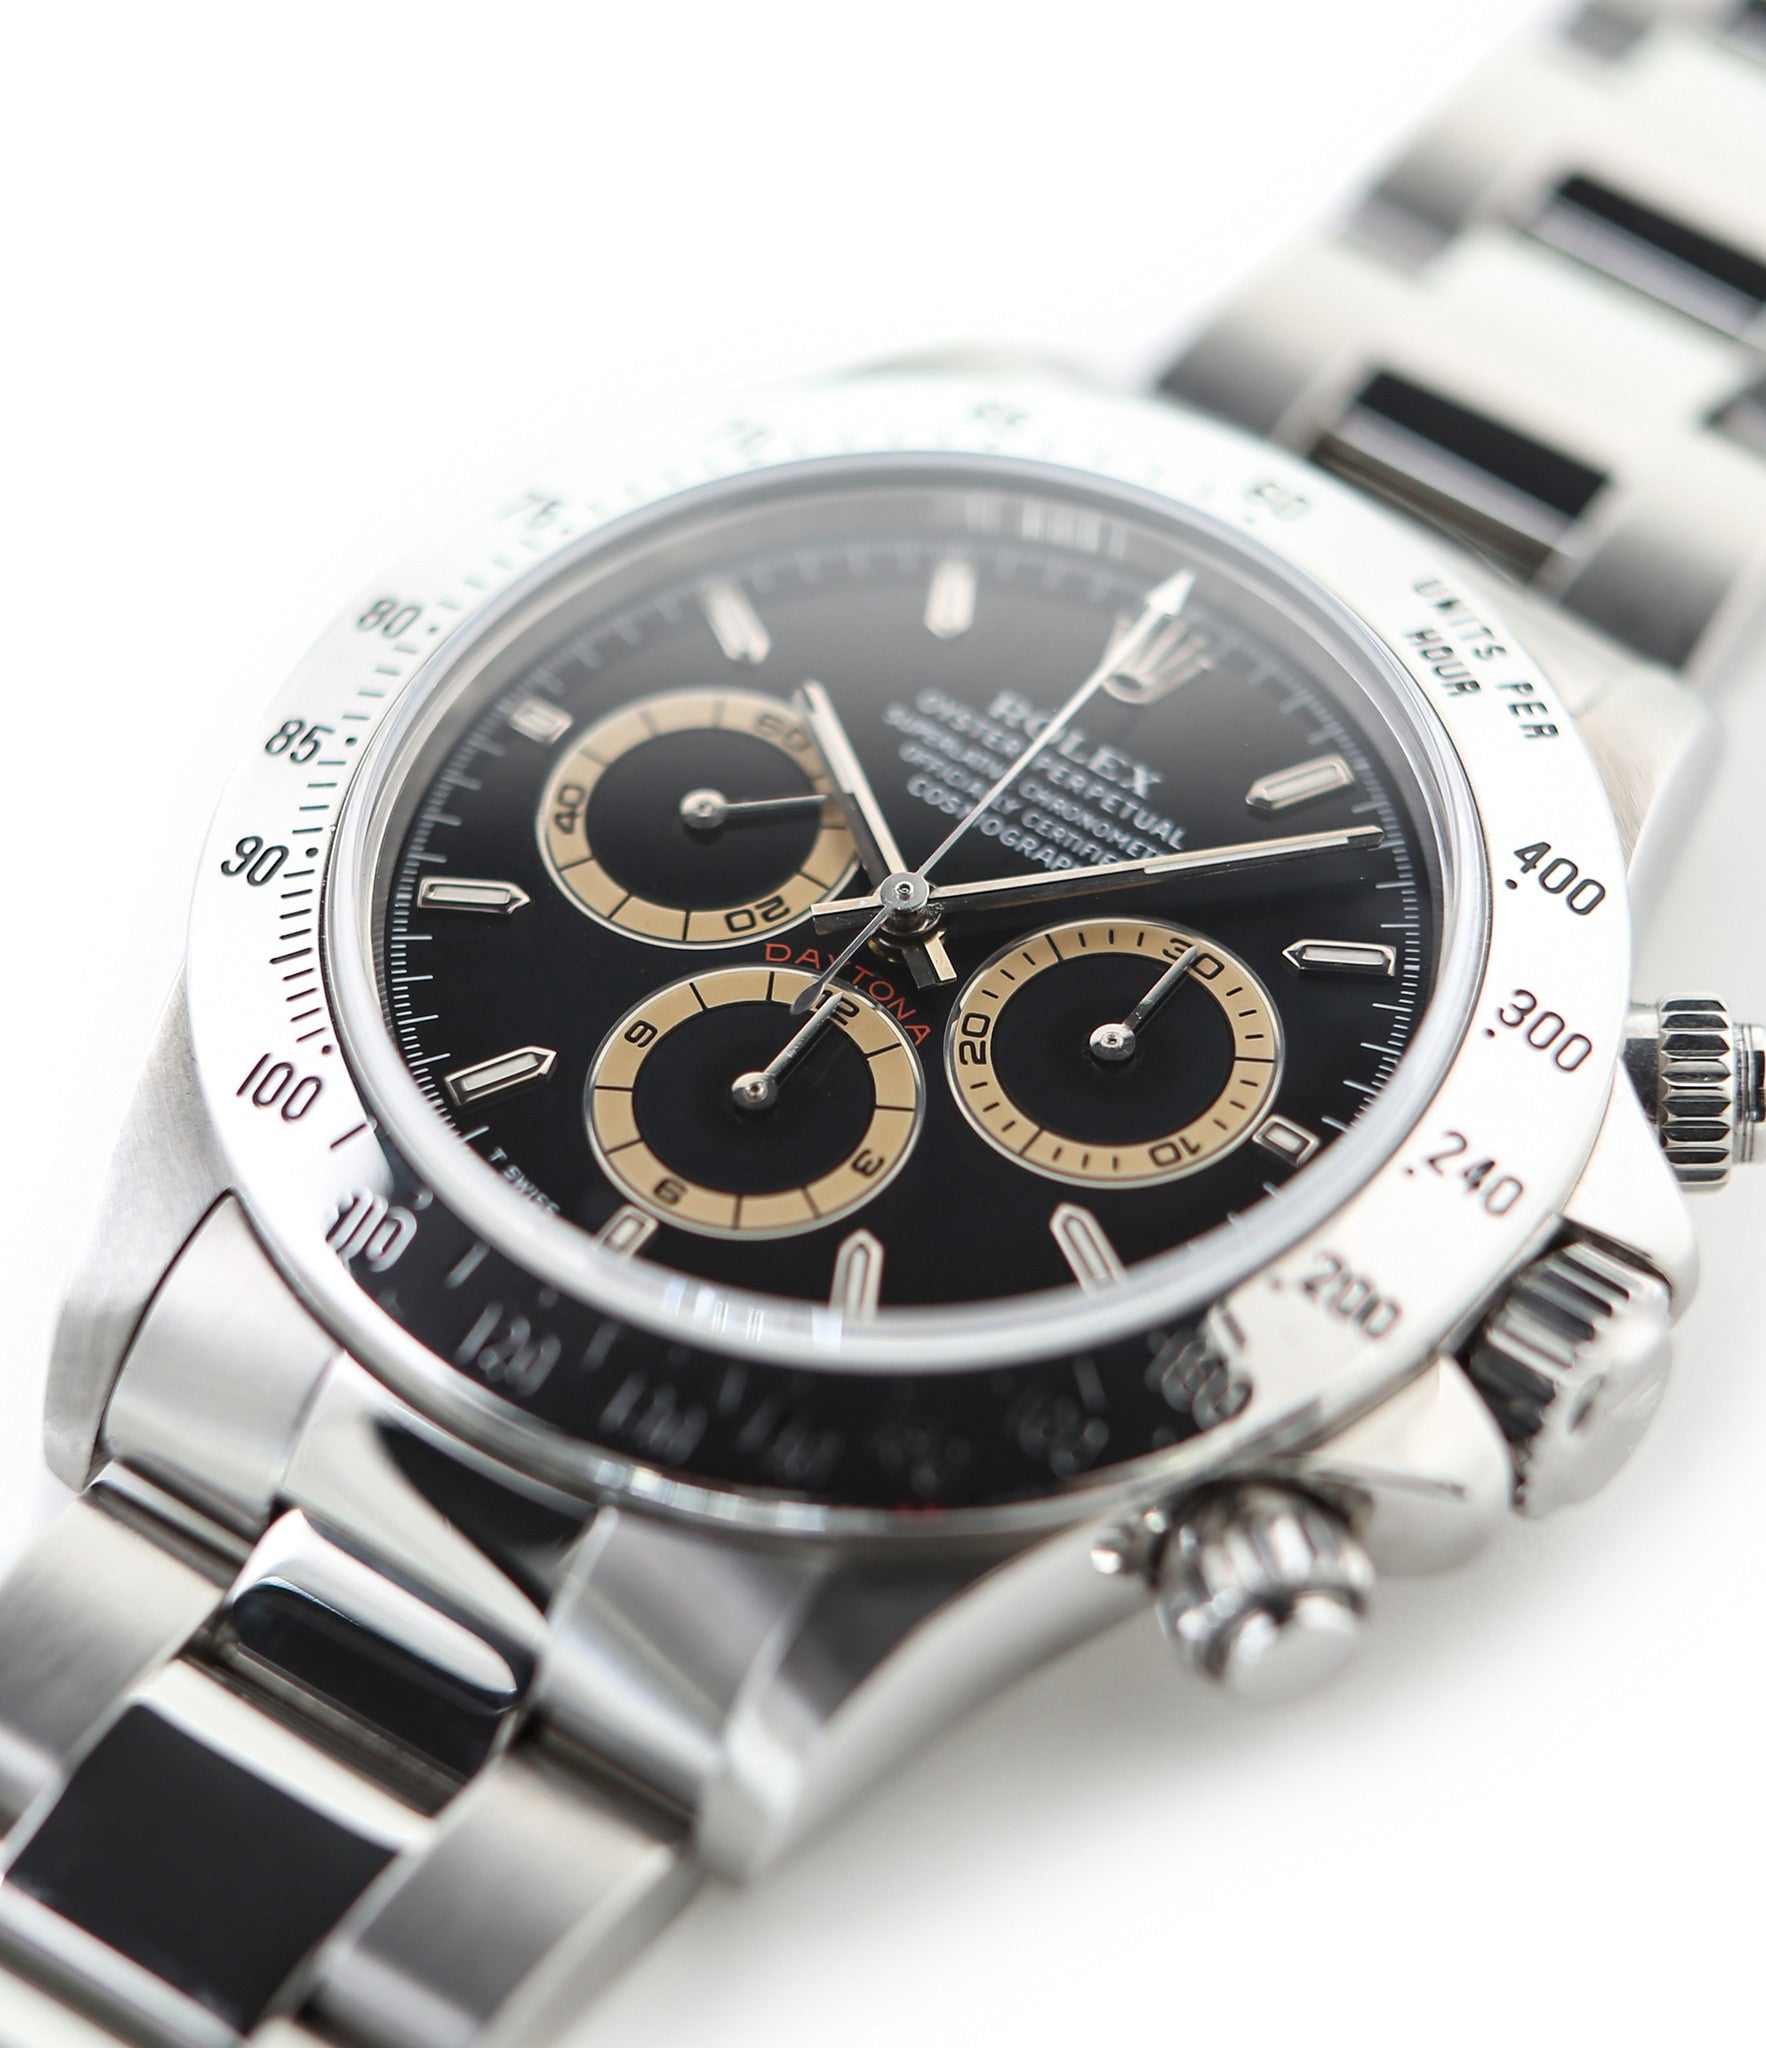 Rolex Cosmograph Daytona With Patrizzi Dial 16520 Buy It Now